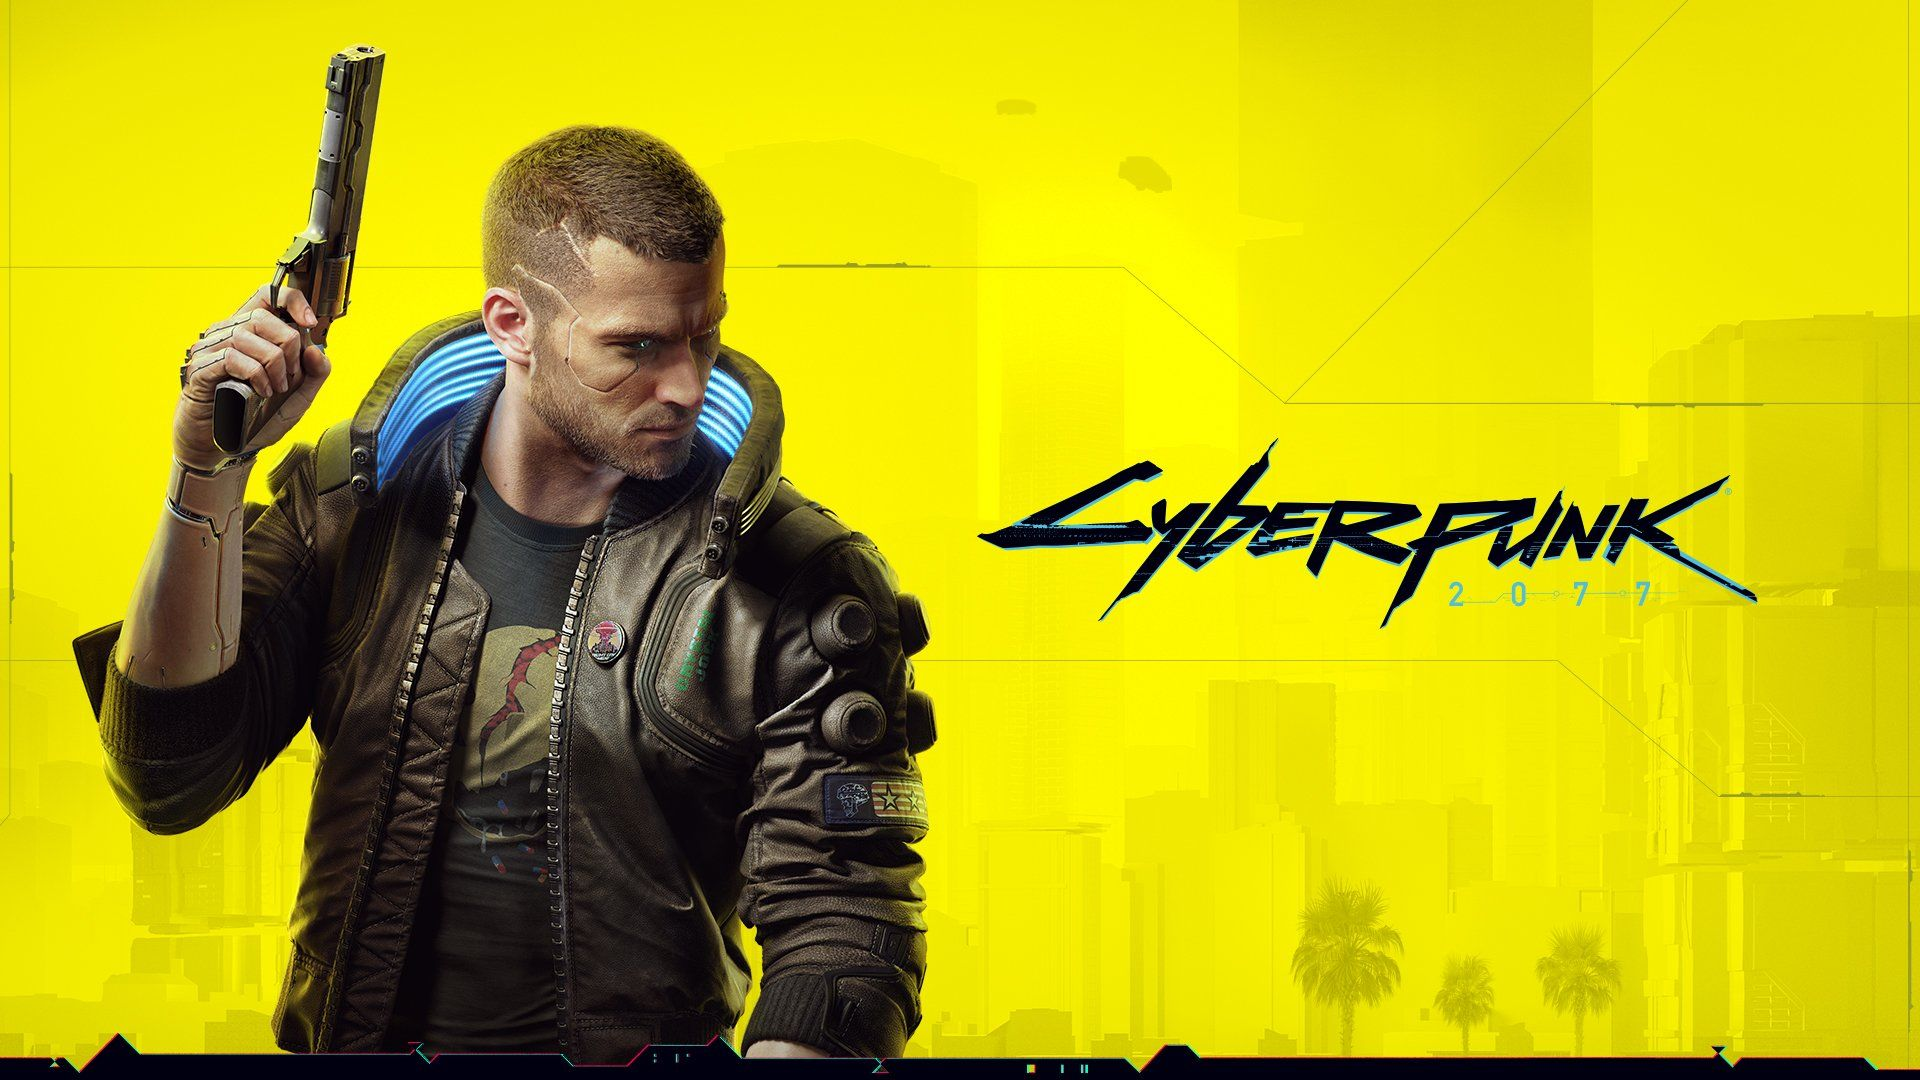 Cyberpunk Yellow Wallpapers   Top Cyberpunk Yellow 1920x1080